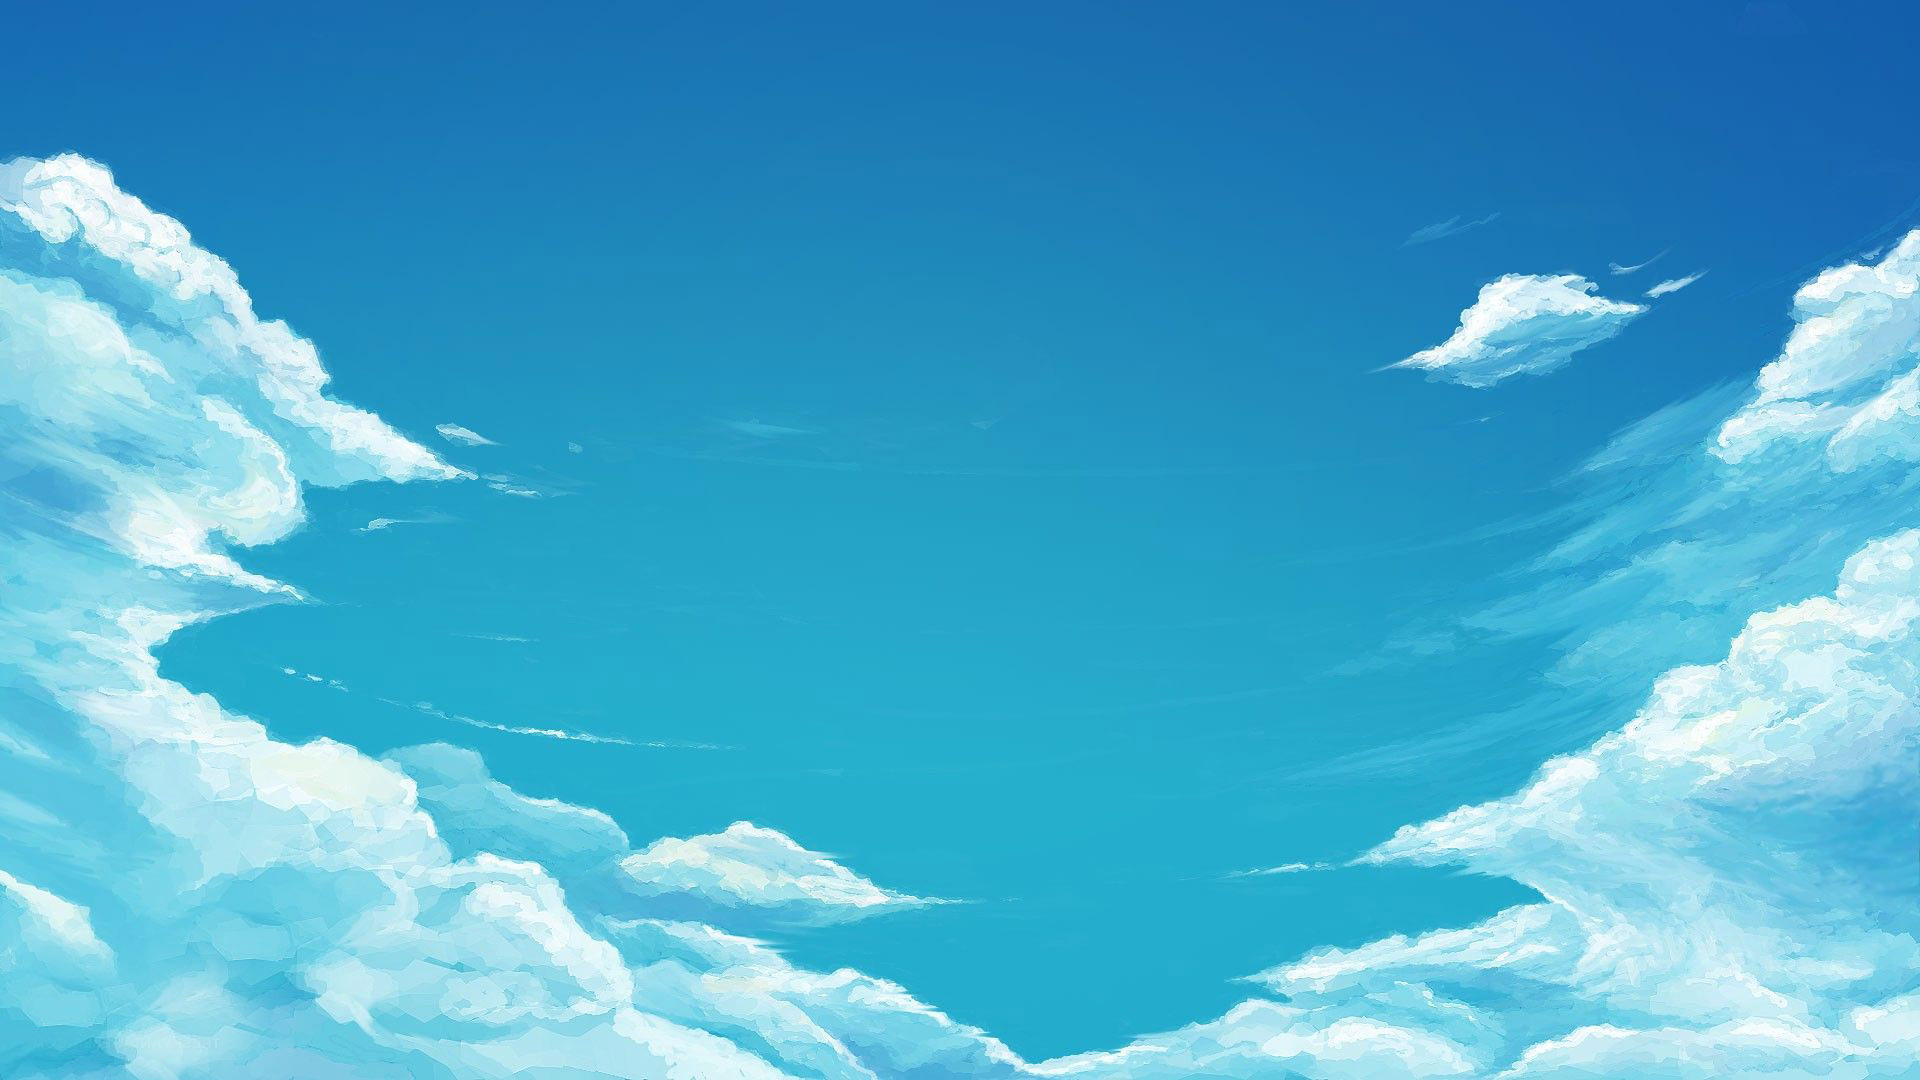 Blue sky wallpaper